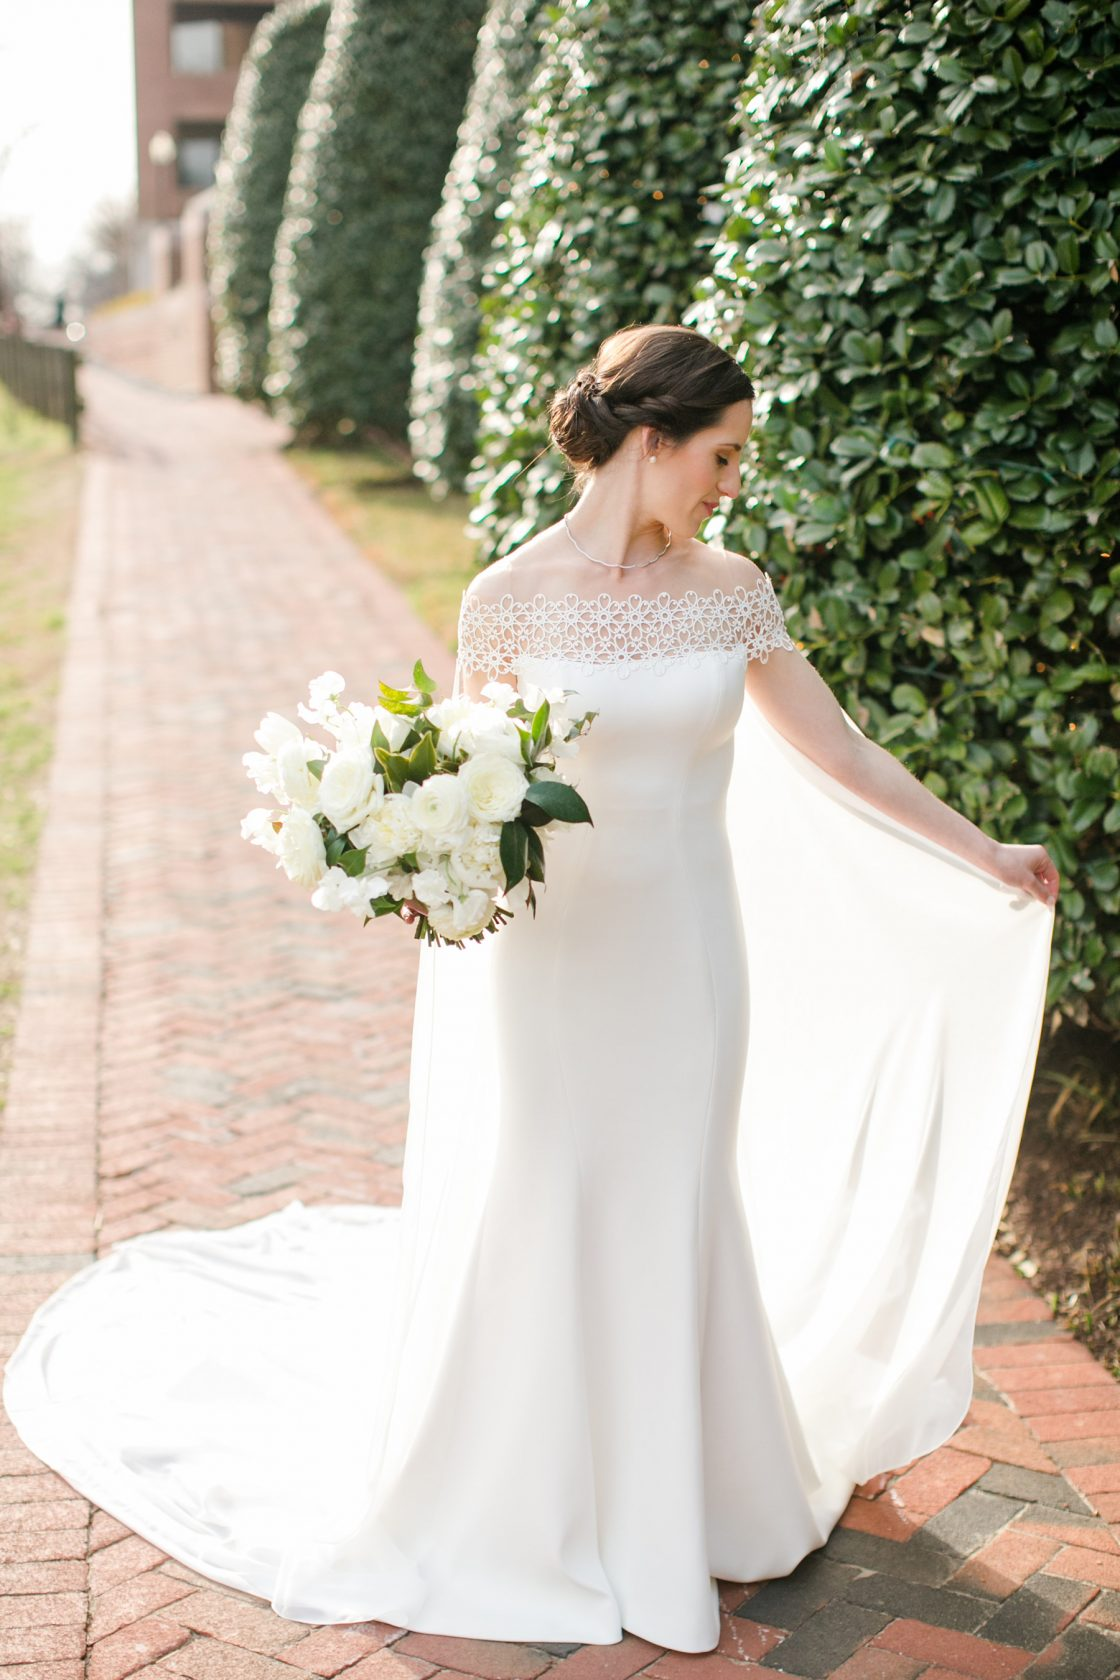 Timeless DC Wedding with Shades of Green Kristen Gardner Photography13